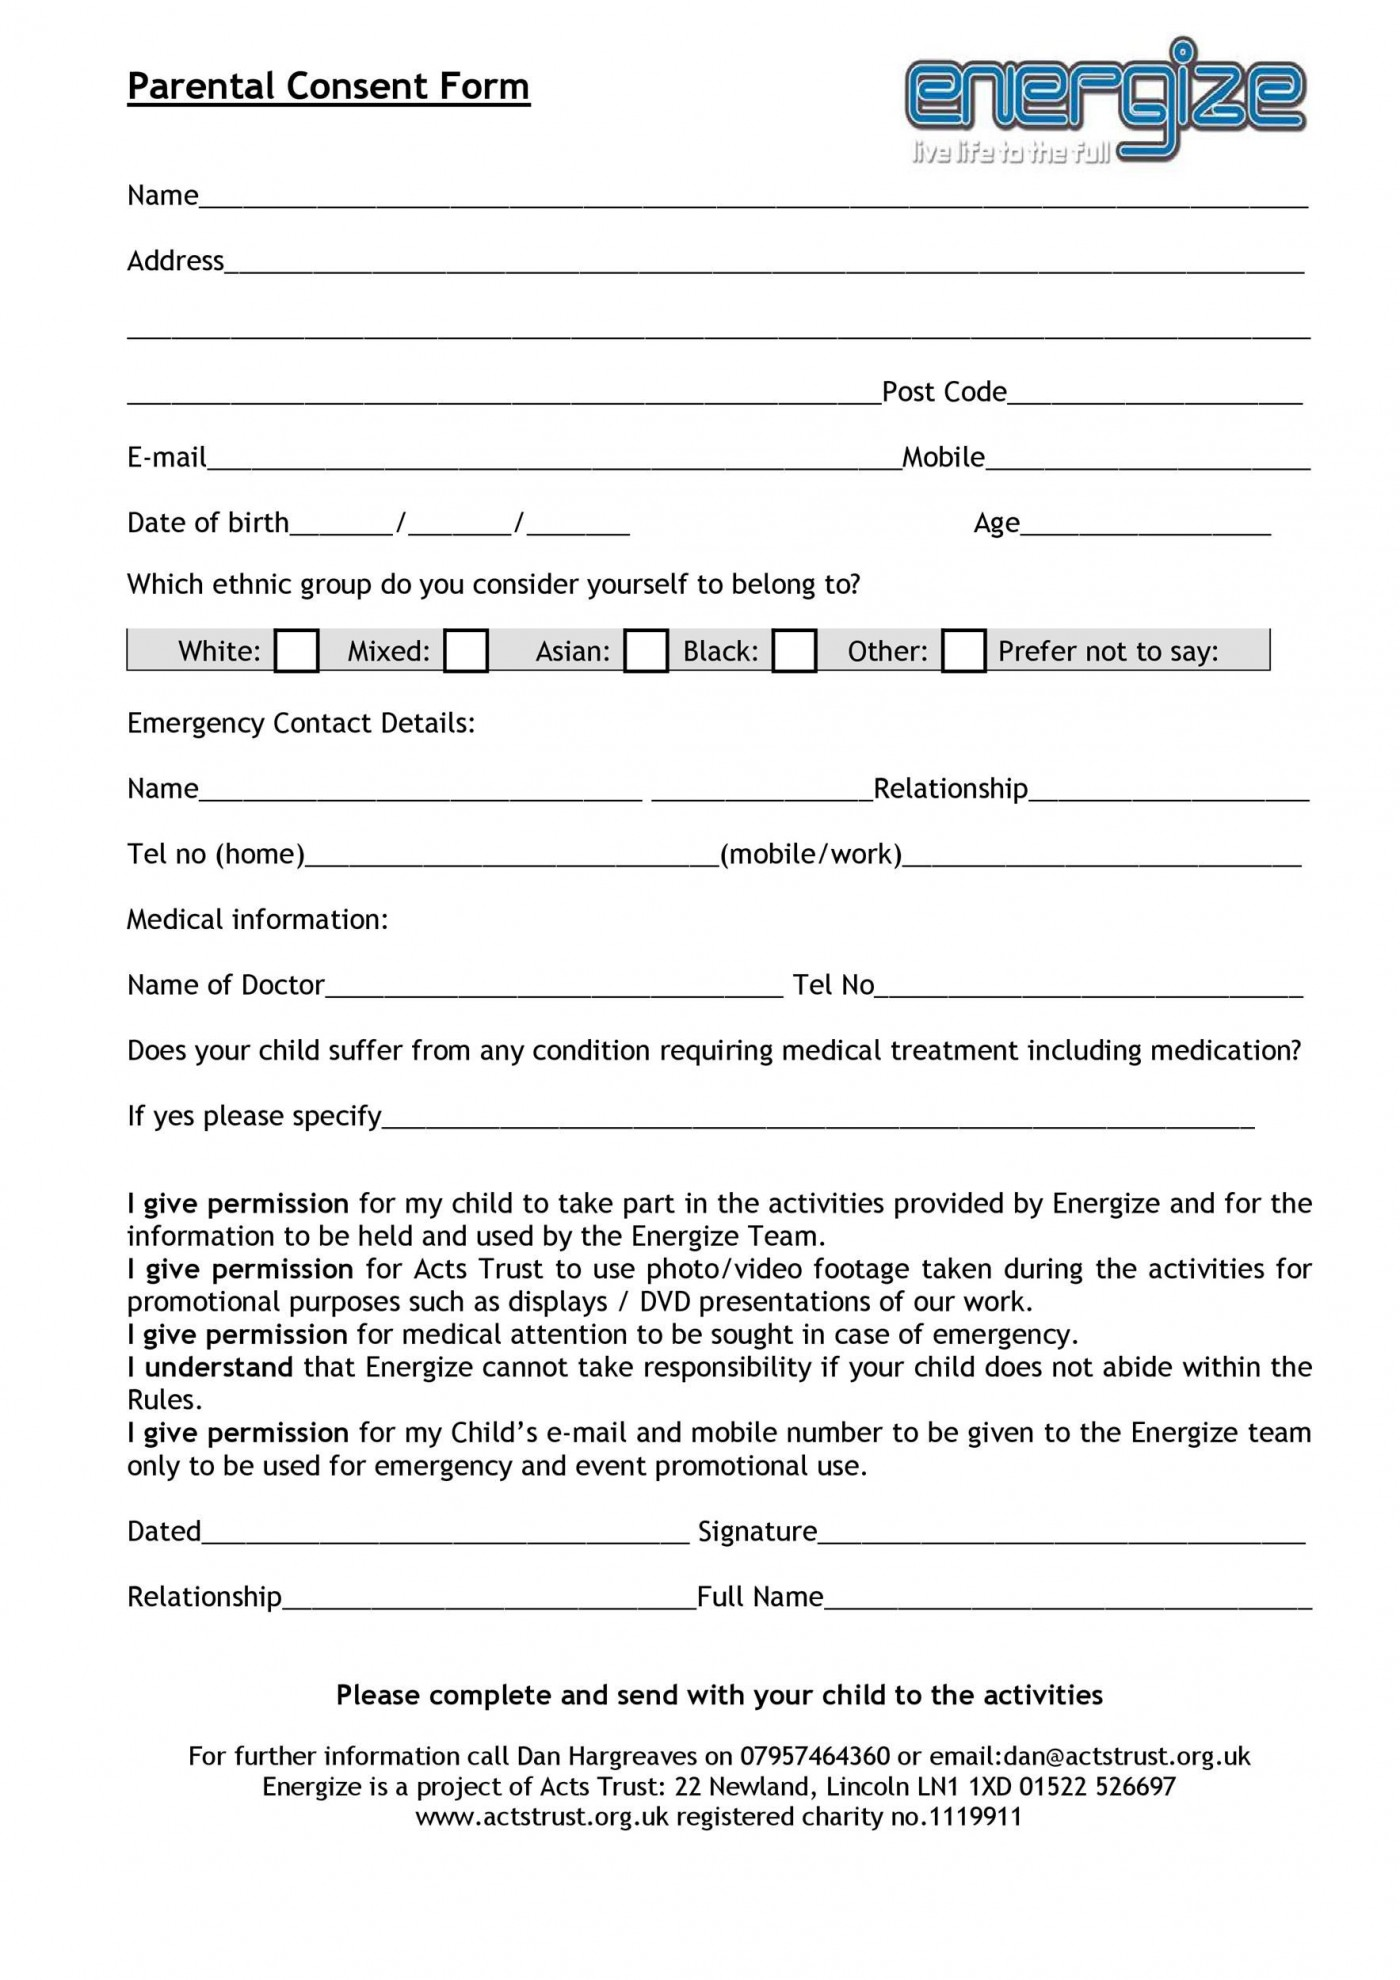 007 Archaicawful Free Printable Medical Consent Form Template Image 1400